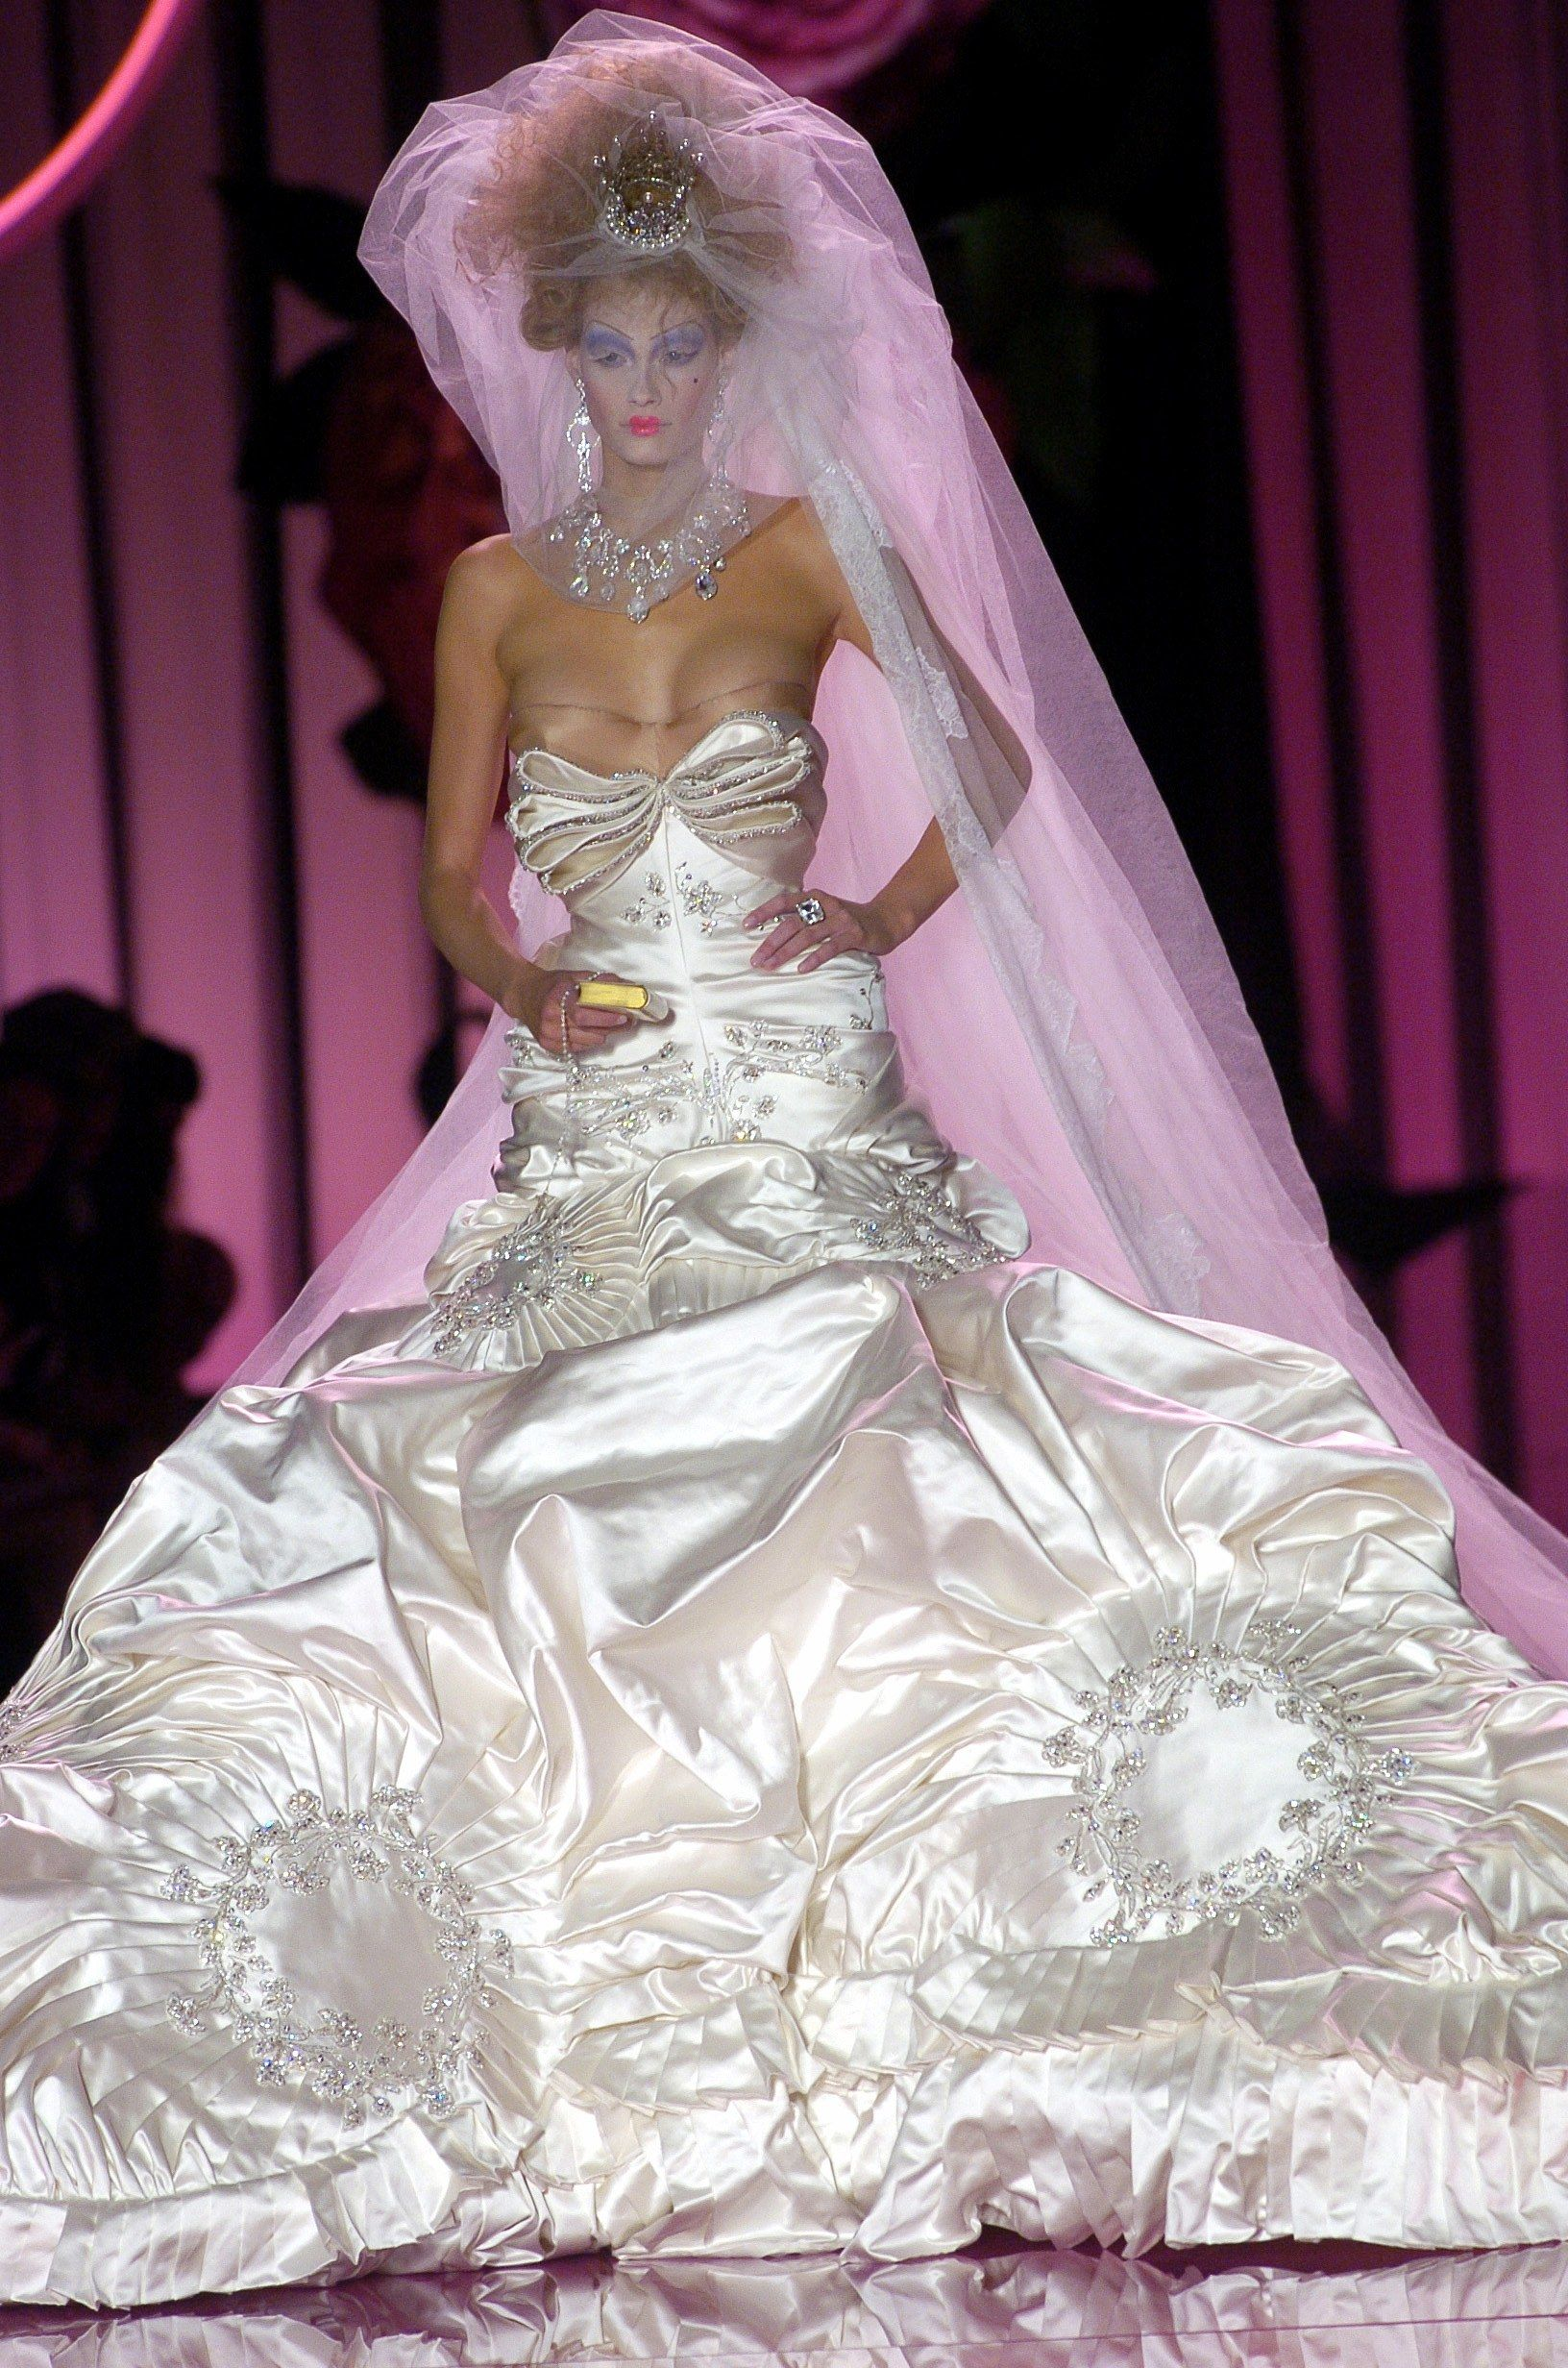 Christian Dior Fall 2004 Couture Fashion Show Wedding Dress Couture Haute Couture Wedding Dress Dior Haute Couture